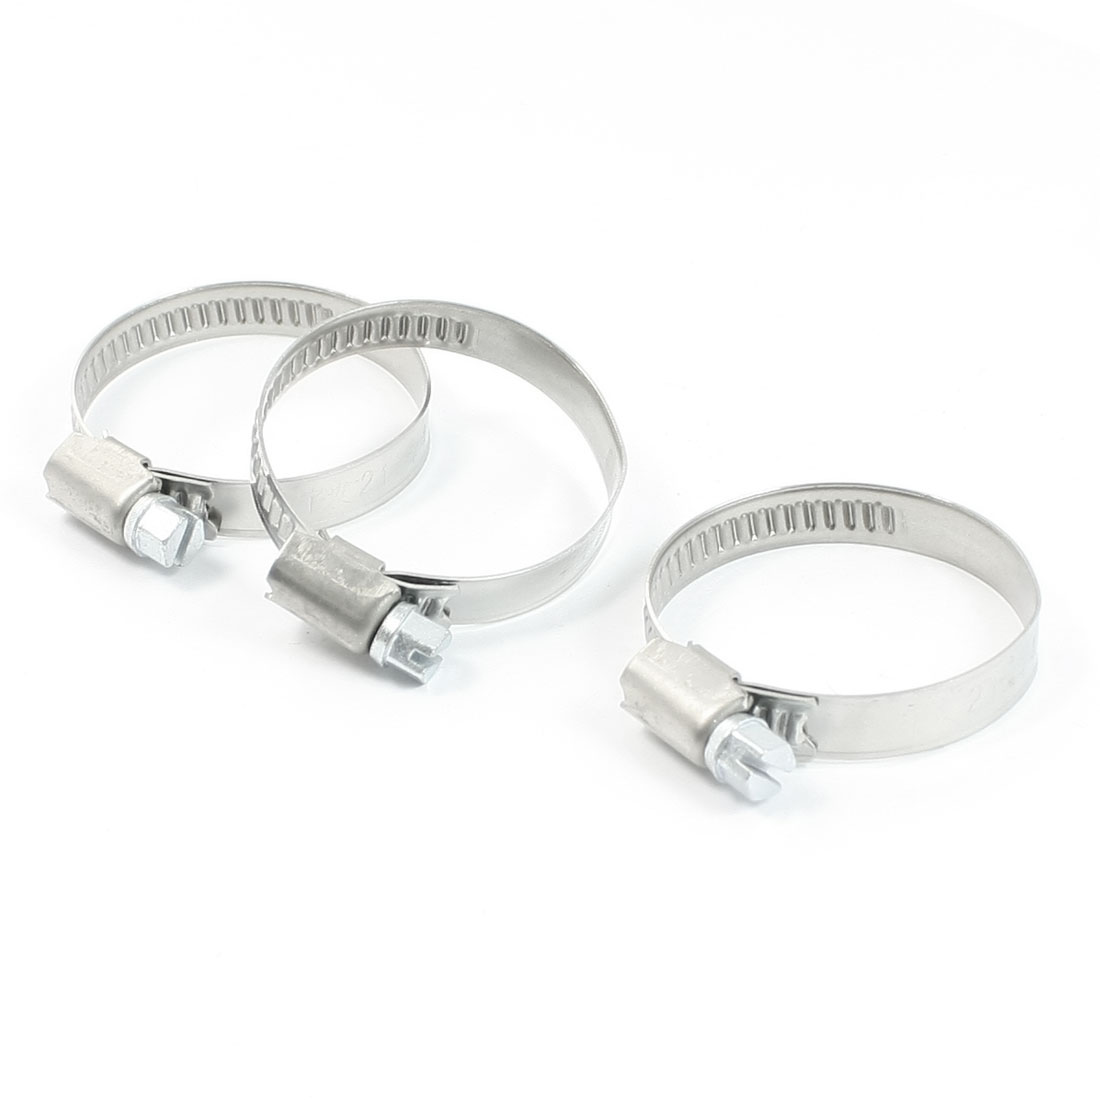 3 Pcs Universal Hardware Parts 9mm Wide Hose Pipe Fastener 21-44mm Clamps Hoop